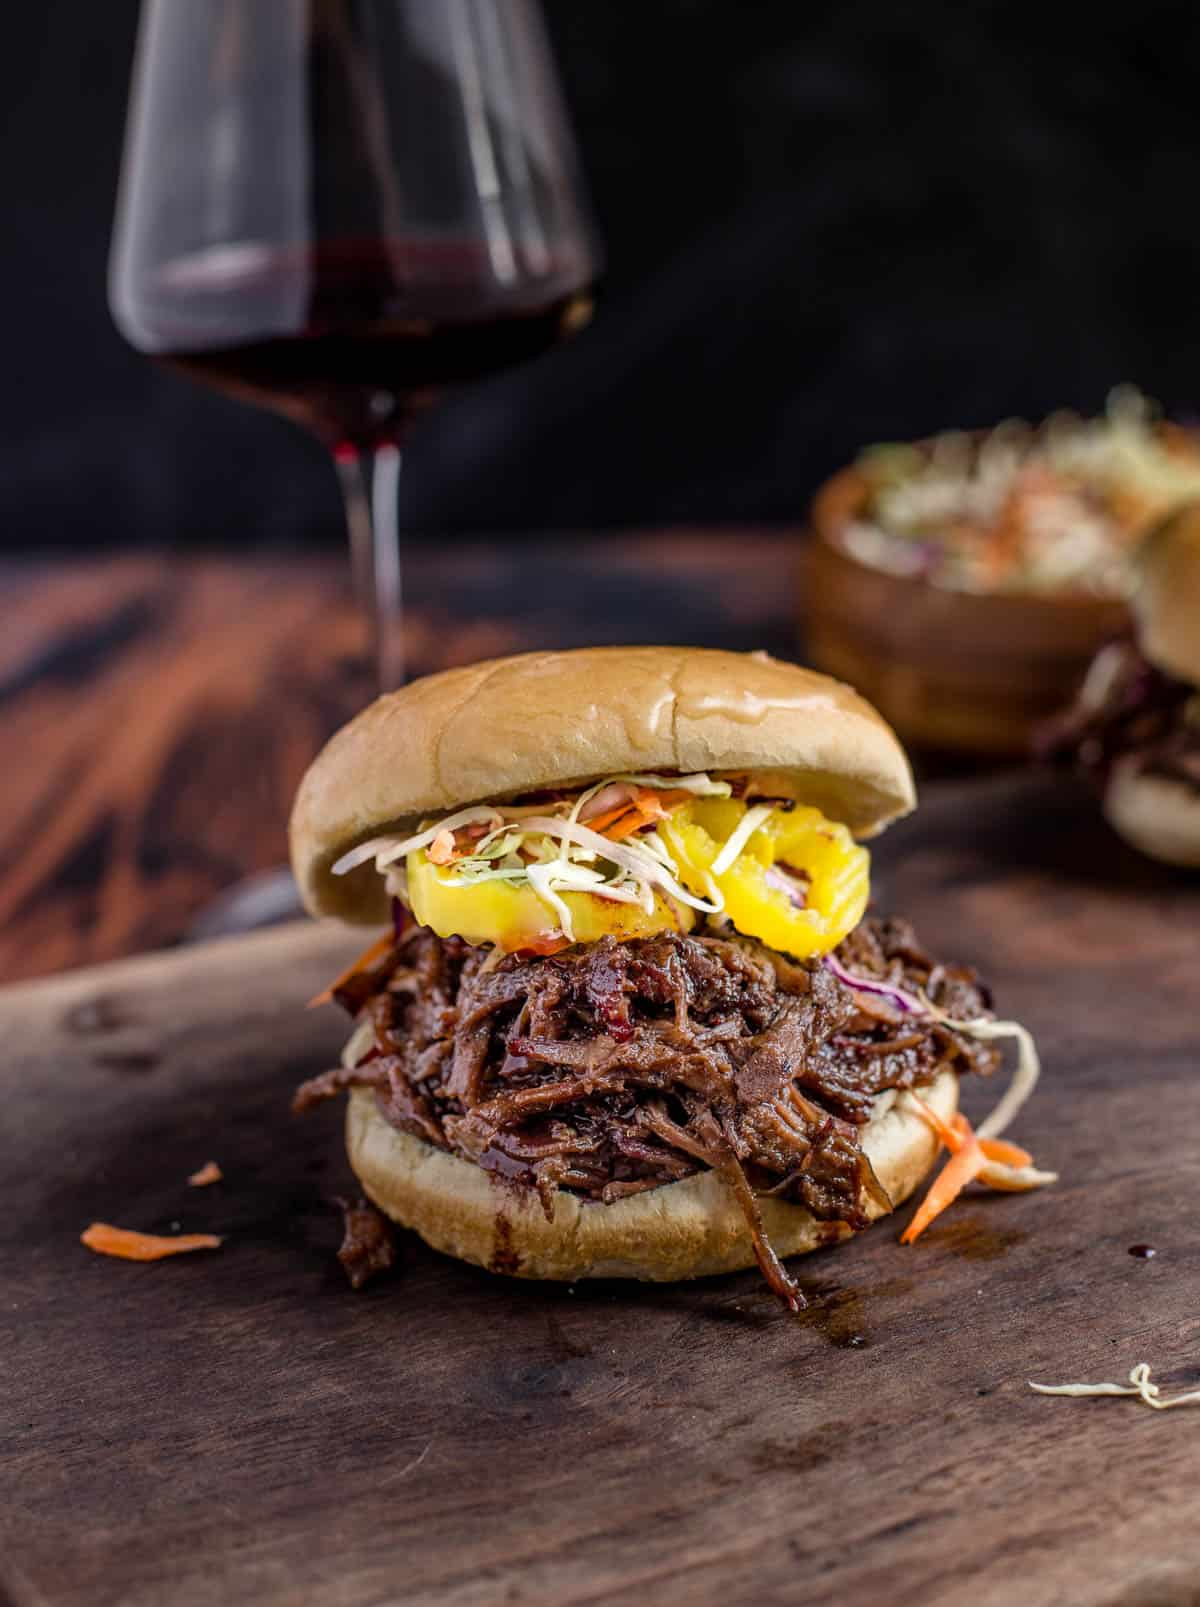 Smoked Pulled Beef Sandwich on a cutting board with a glass of wine